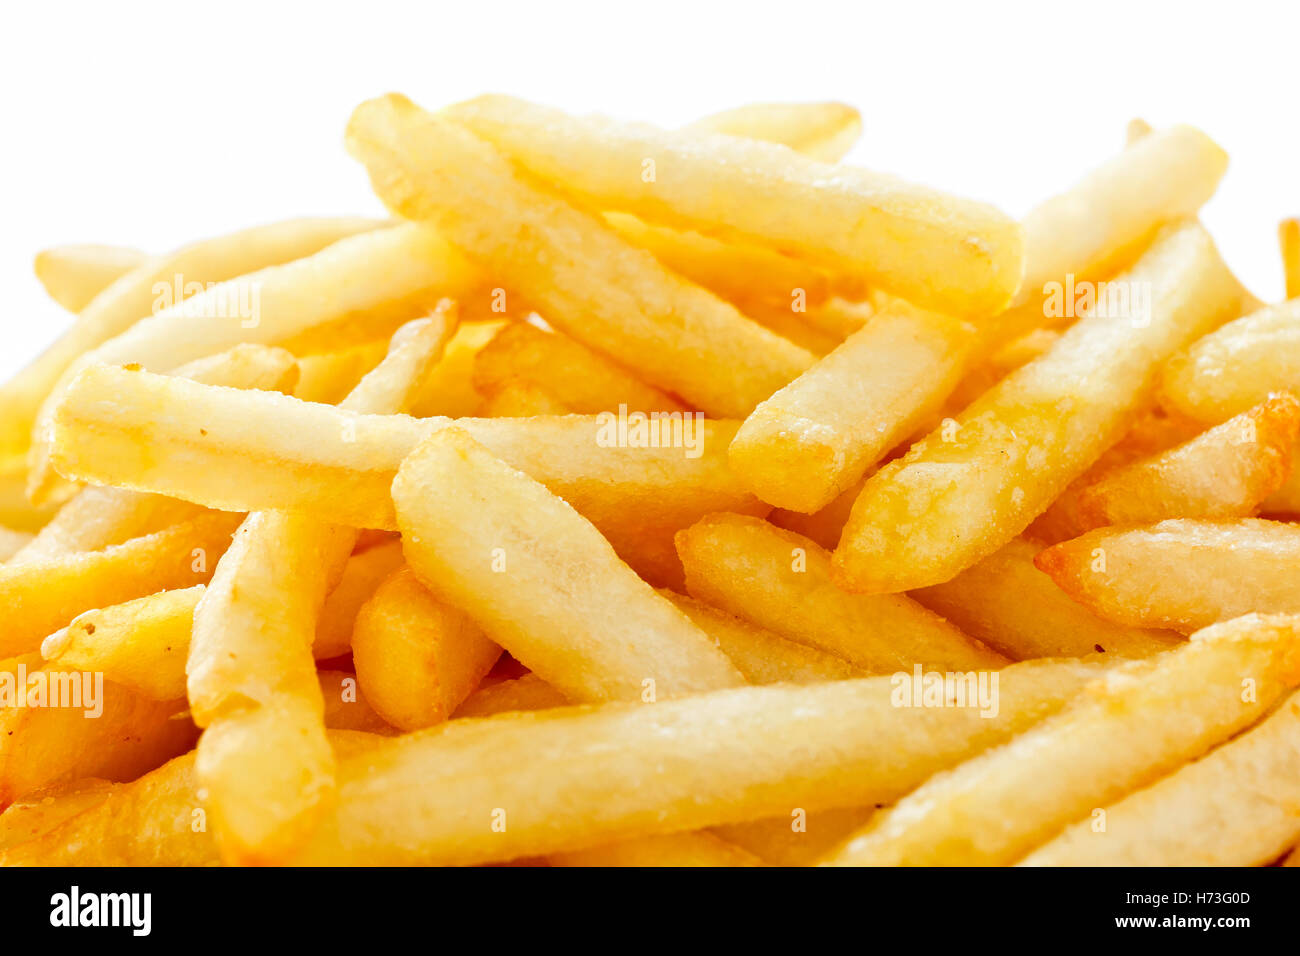 Crispy French fries with ketchup ready to eat Stock Photo